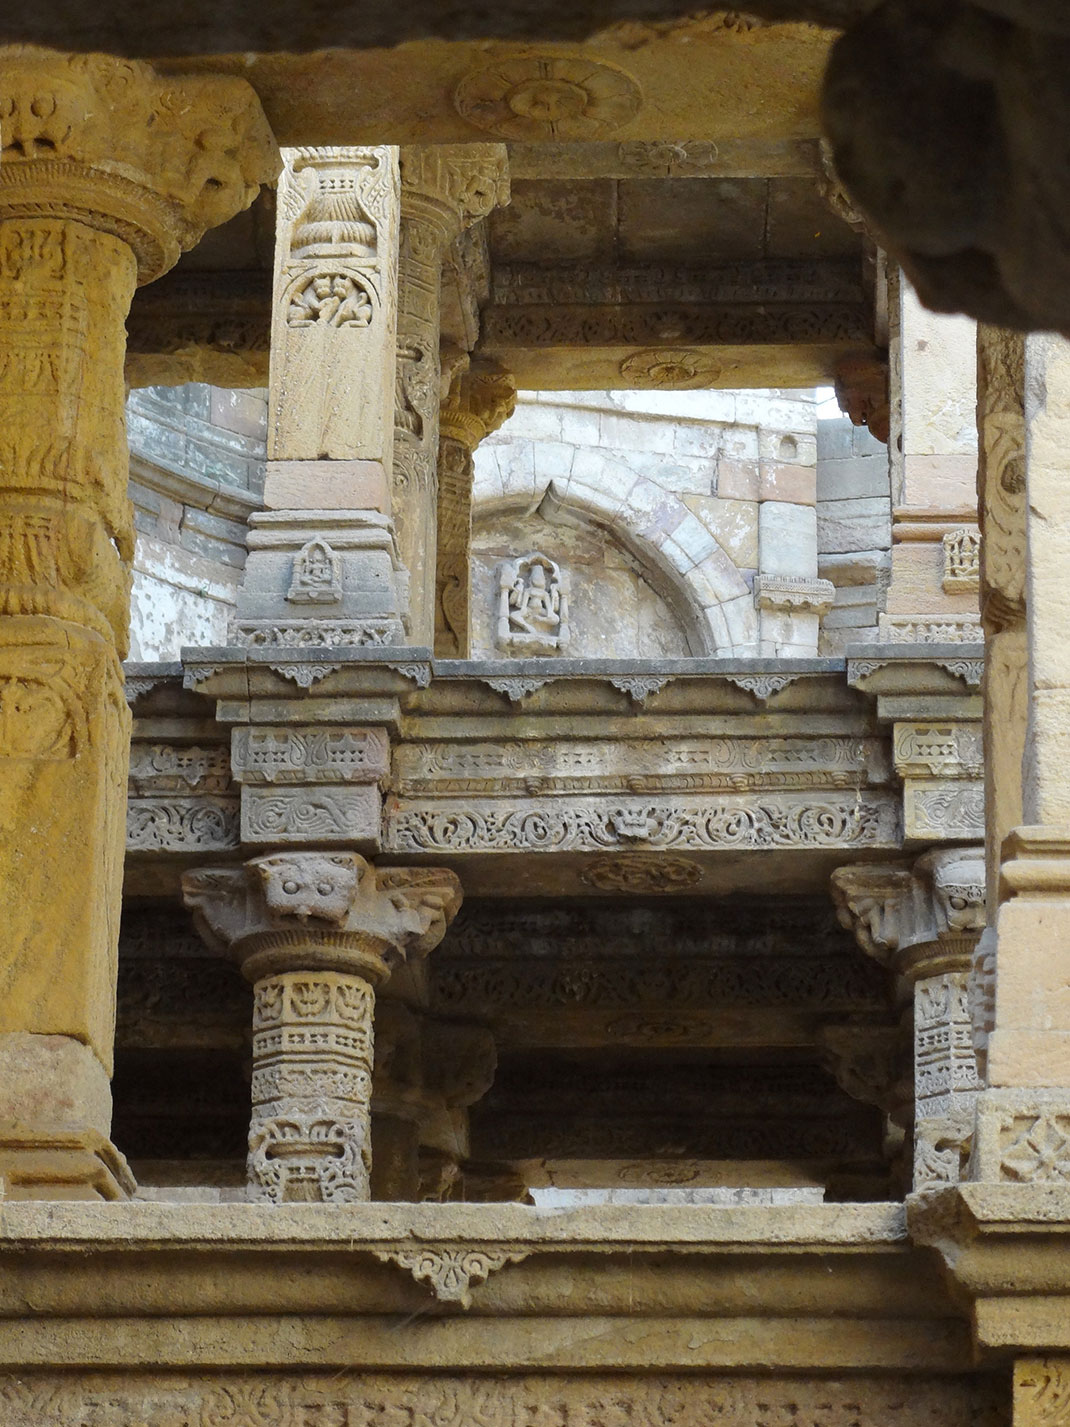 Admire These 2000 Year Old Somptous Buildings In India Destined To Disappear-24